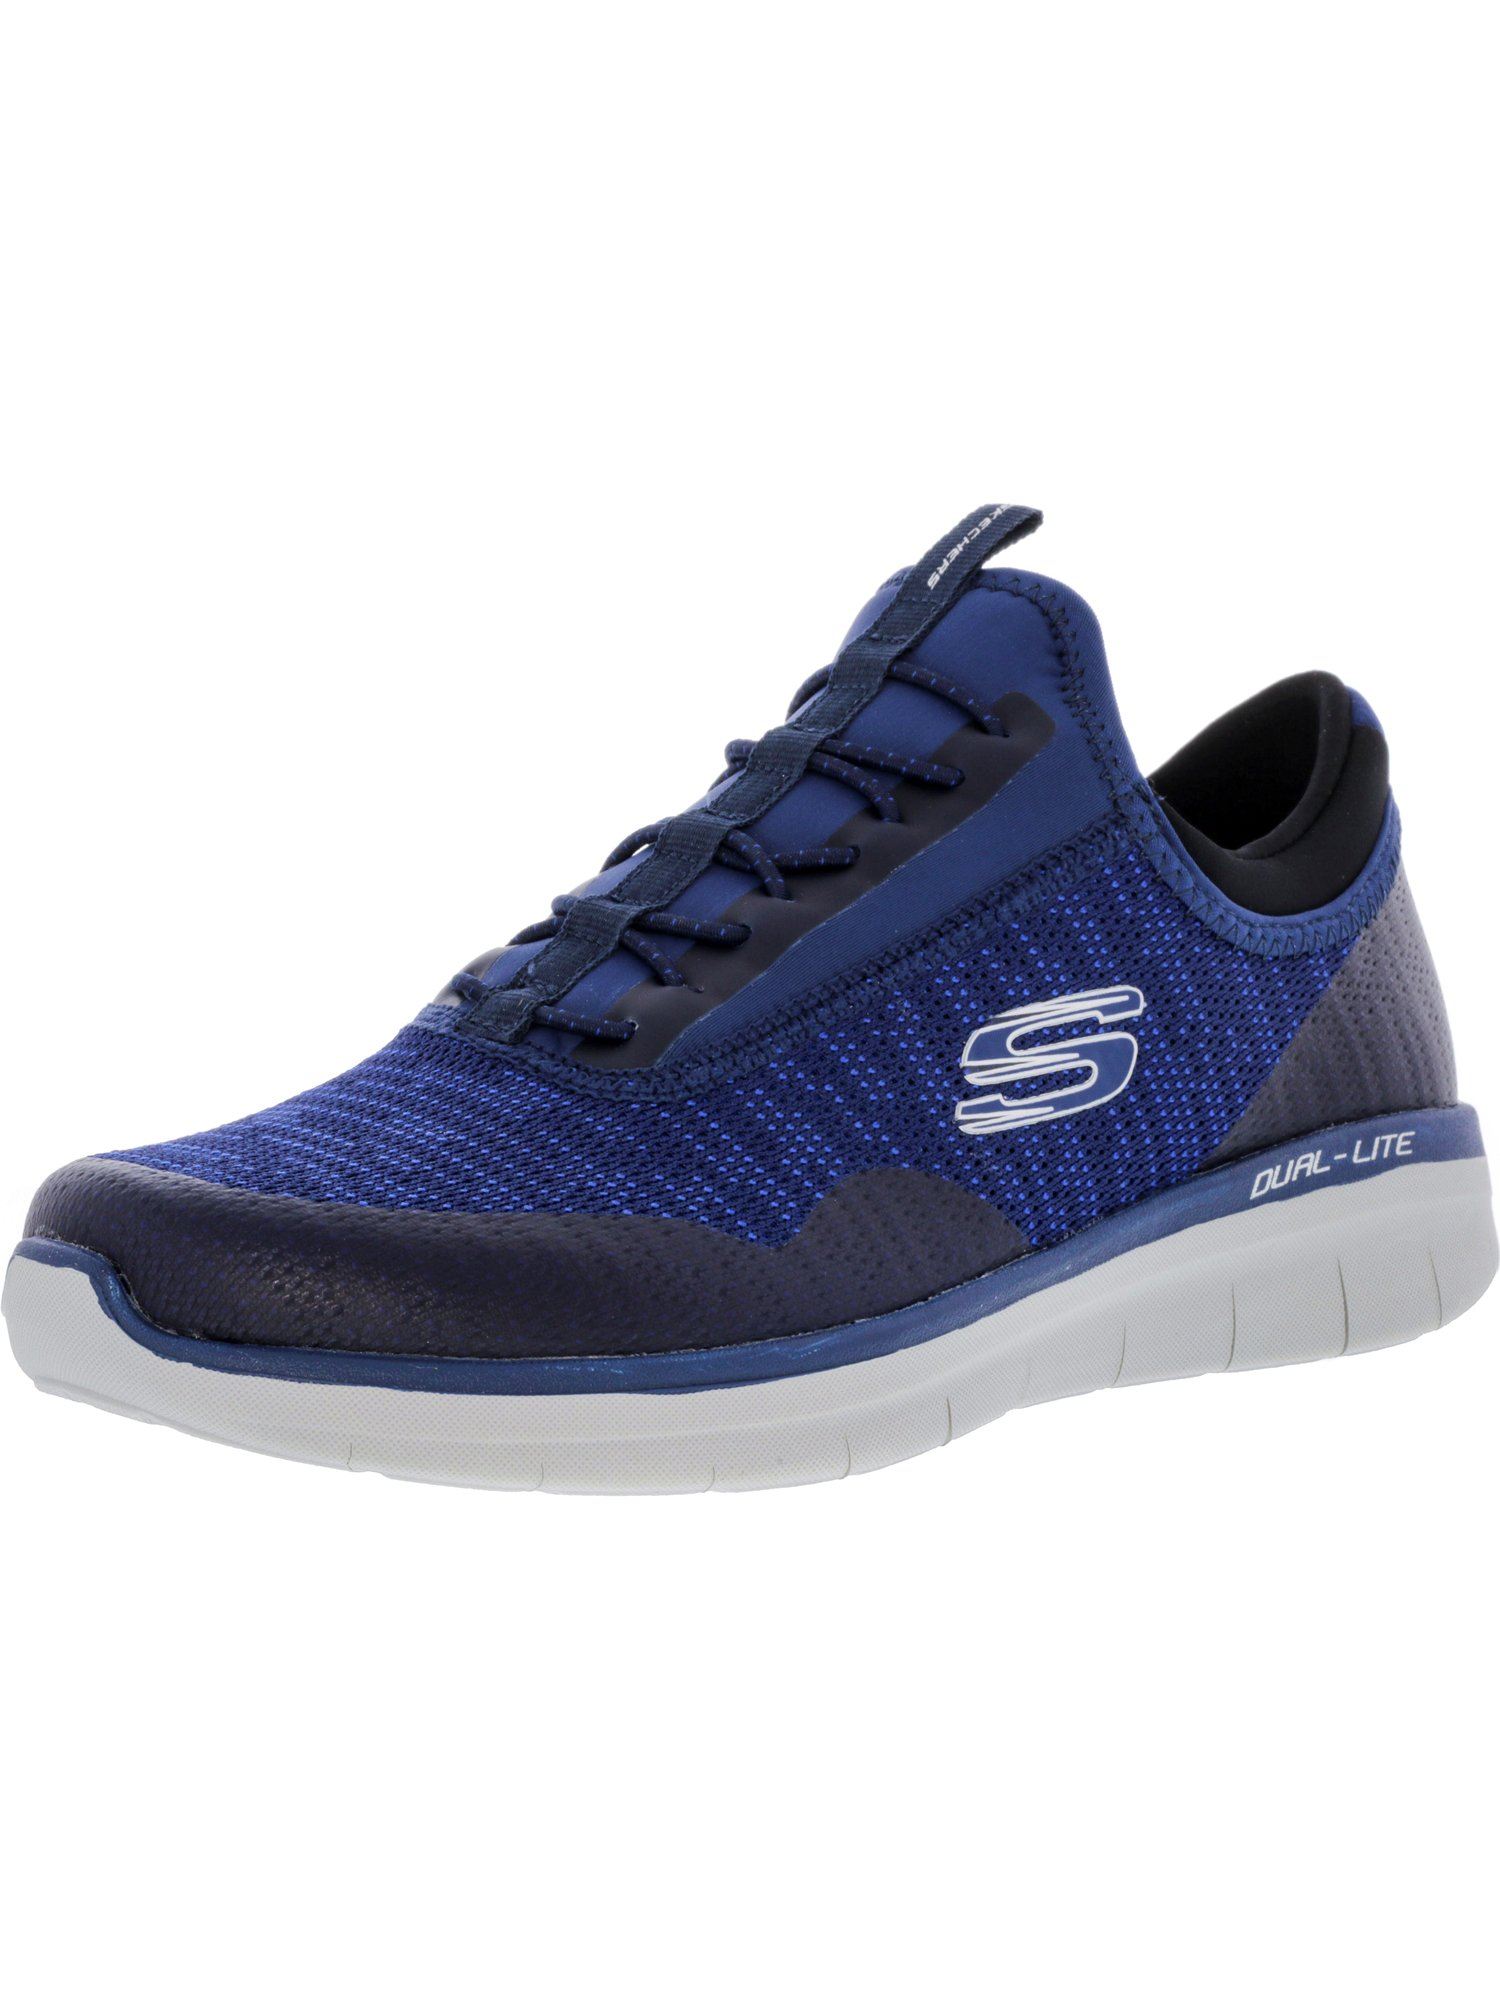 Skechers Men's Synergy 2.0 - Turris Navy / Blue Ankle-High Training Shoes 8.5M